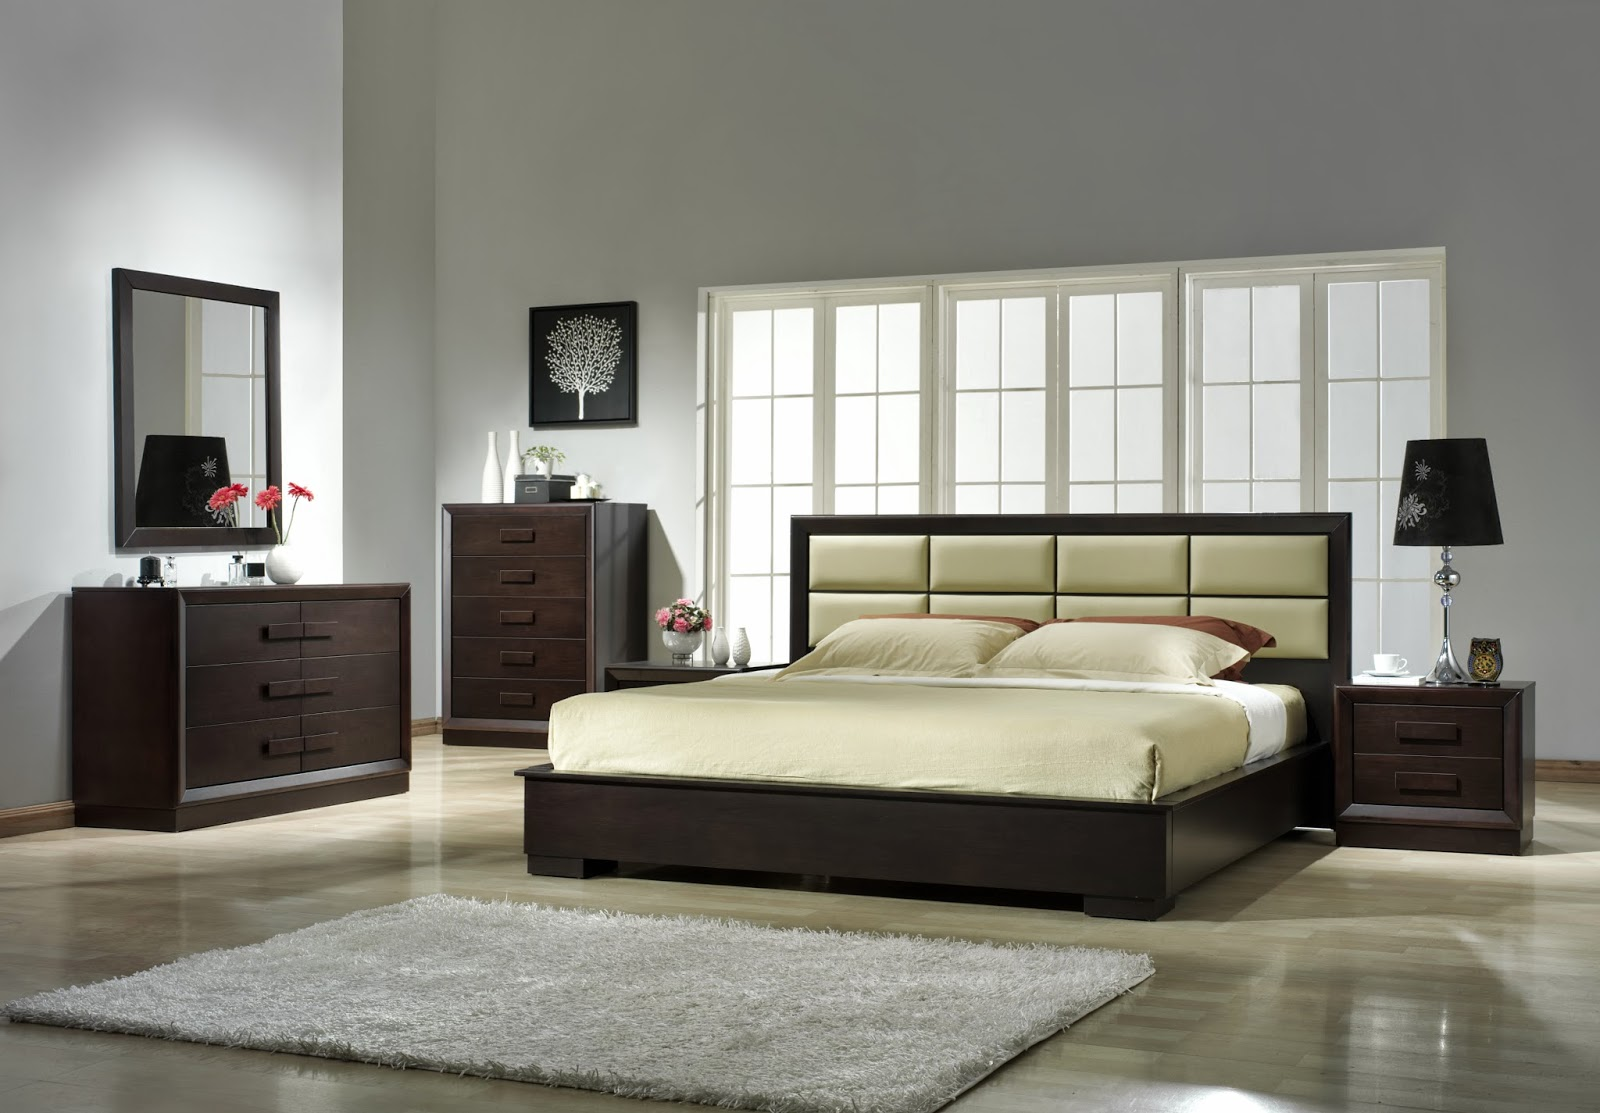 Cheapest bedroom furniture popular interior house ideas for Cheap bedroom furniture sets